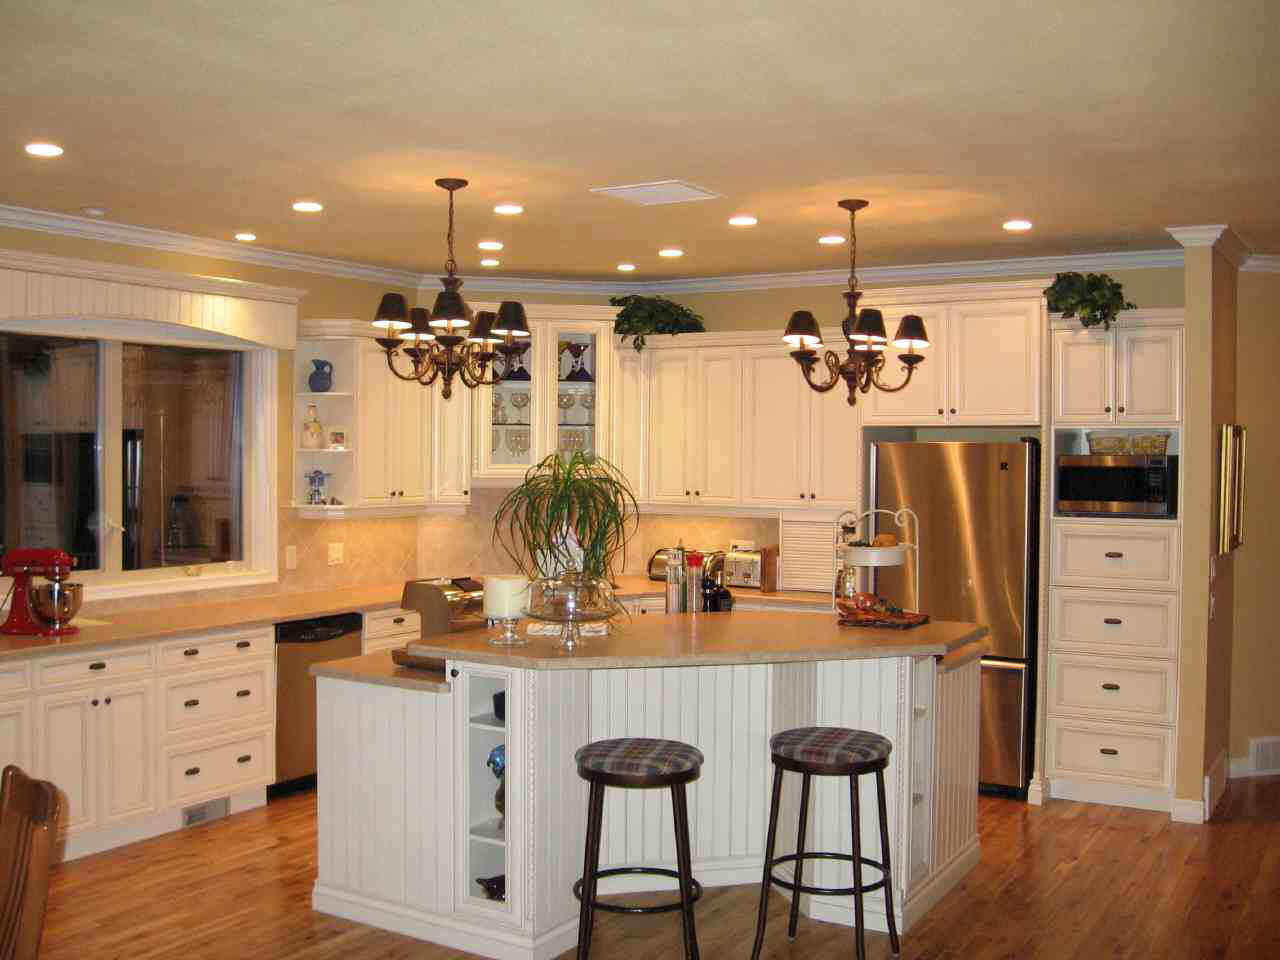 remodeling small kitchen island and stools pictures 03